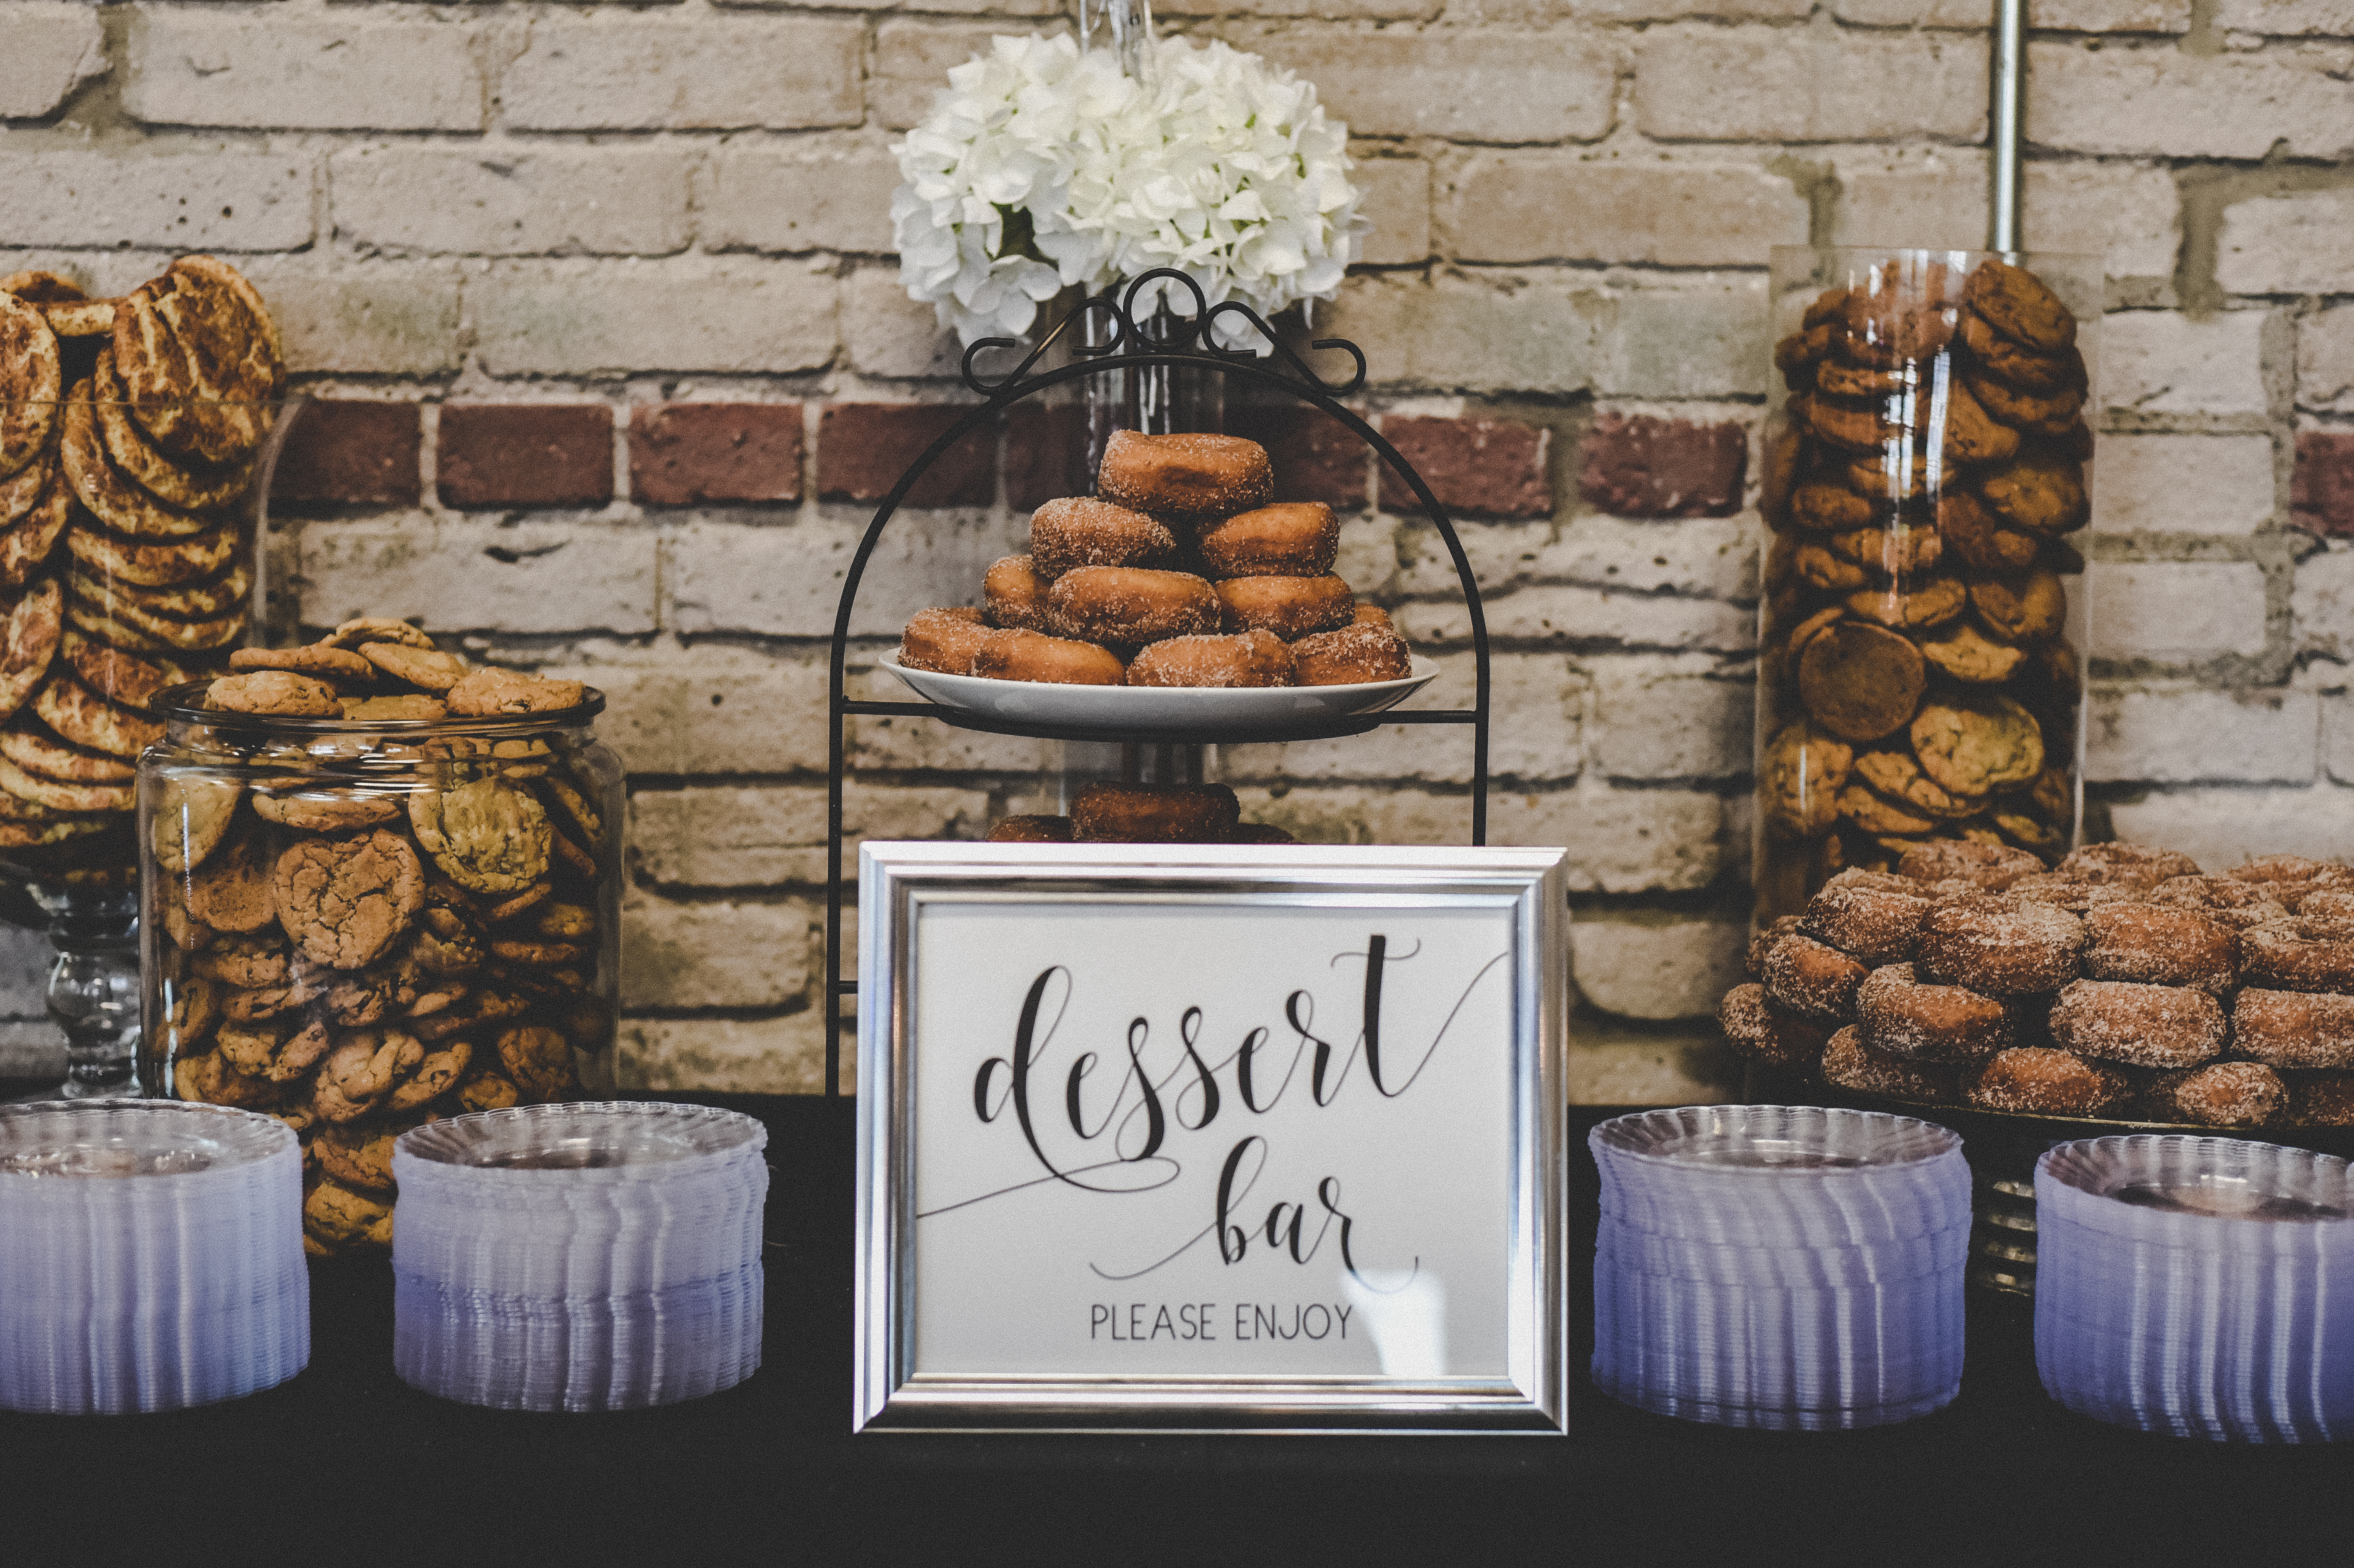 wedding dessert bar with donuts and baked goods